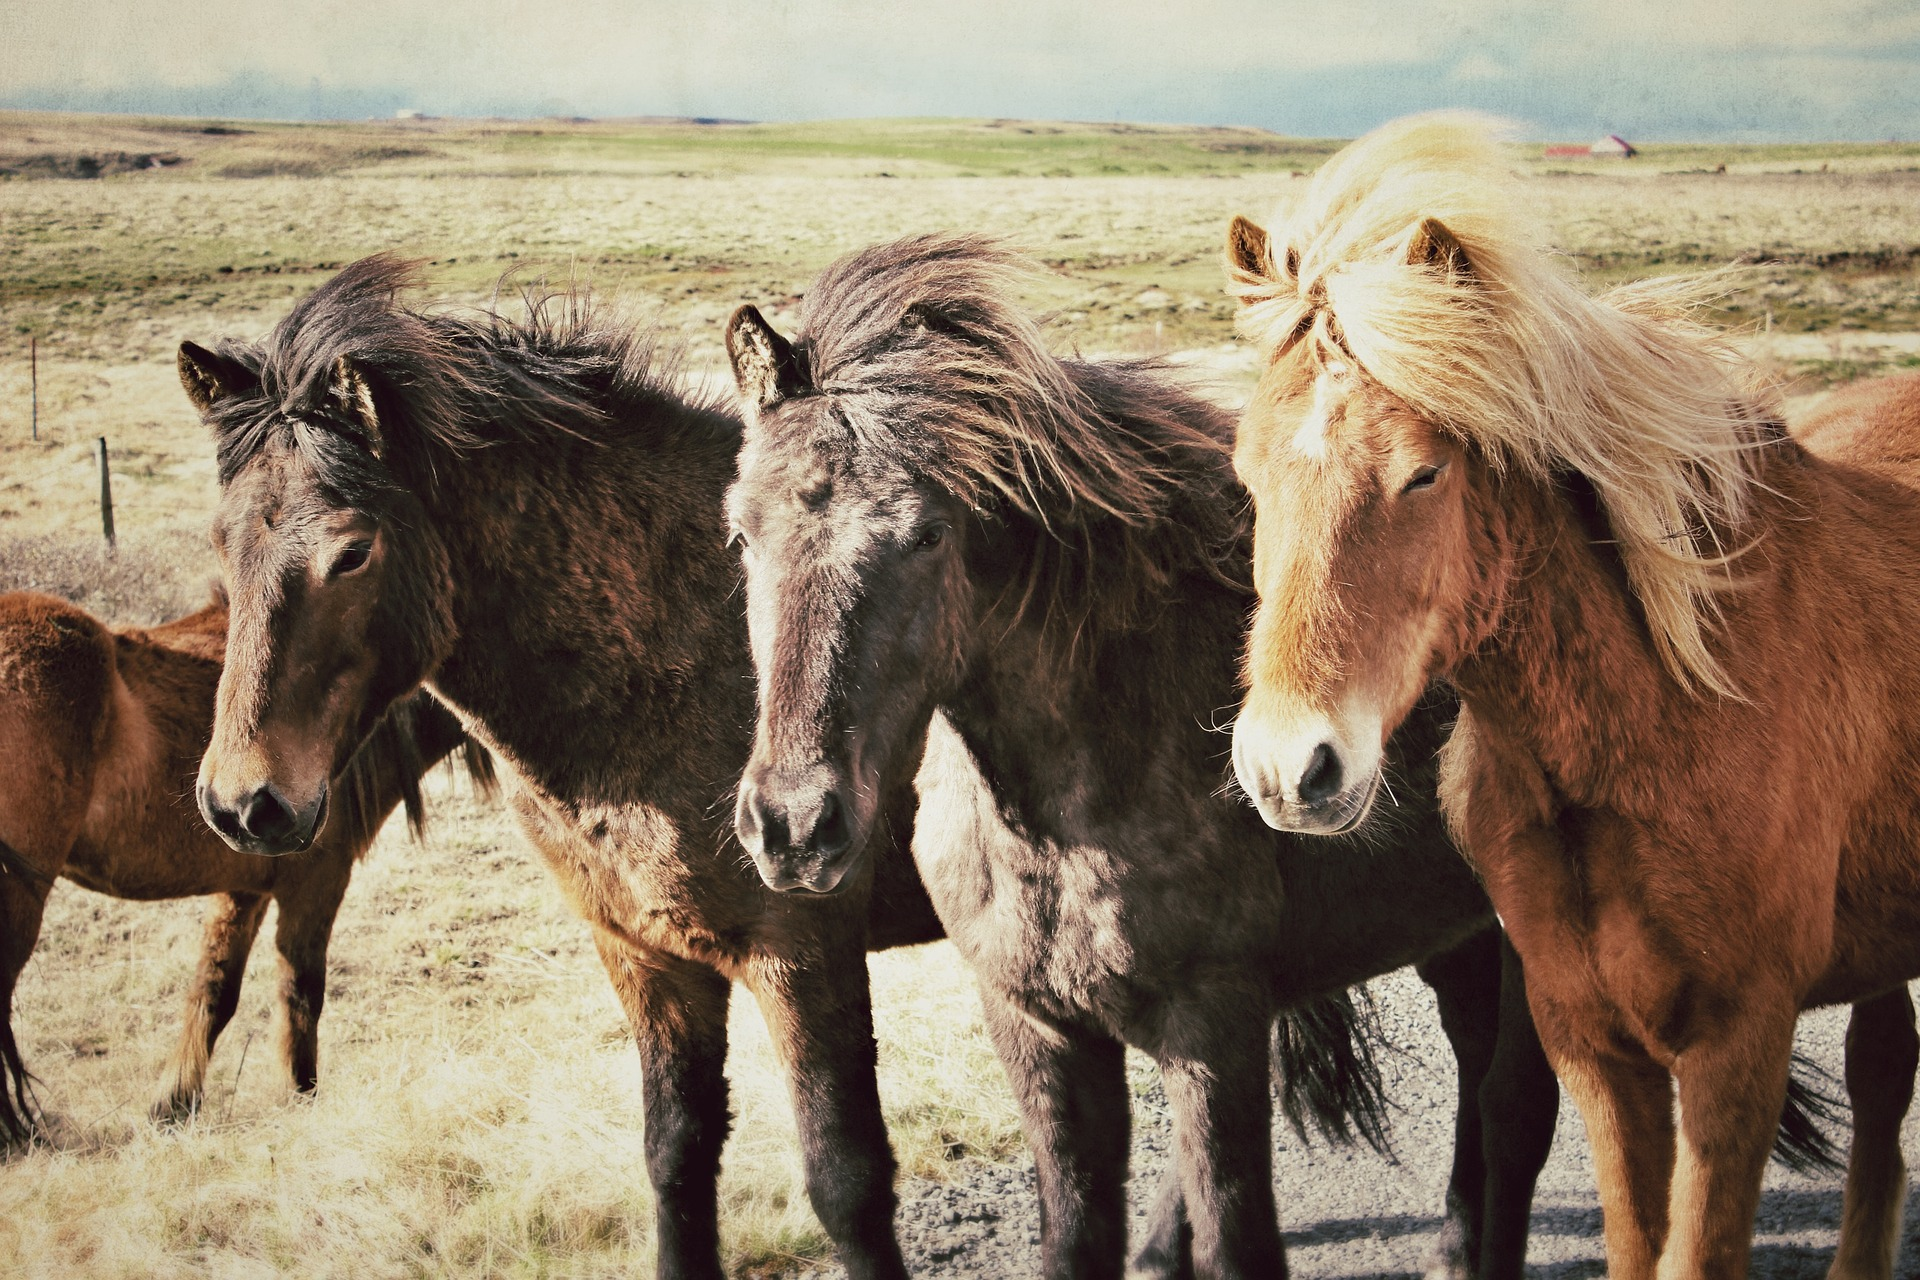 Horses of Iceland - One of the Highlights of Iceland